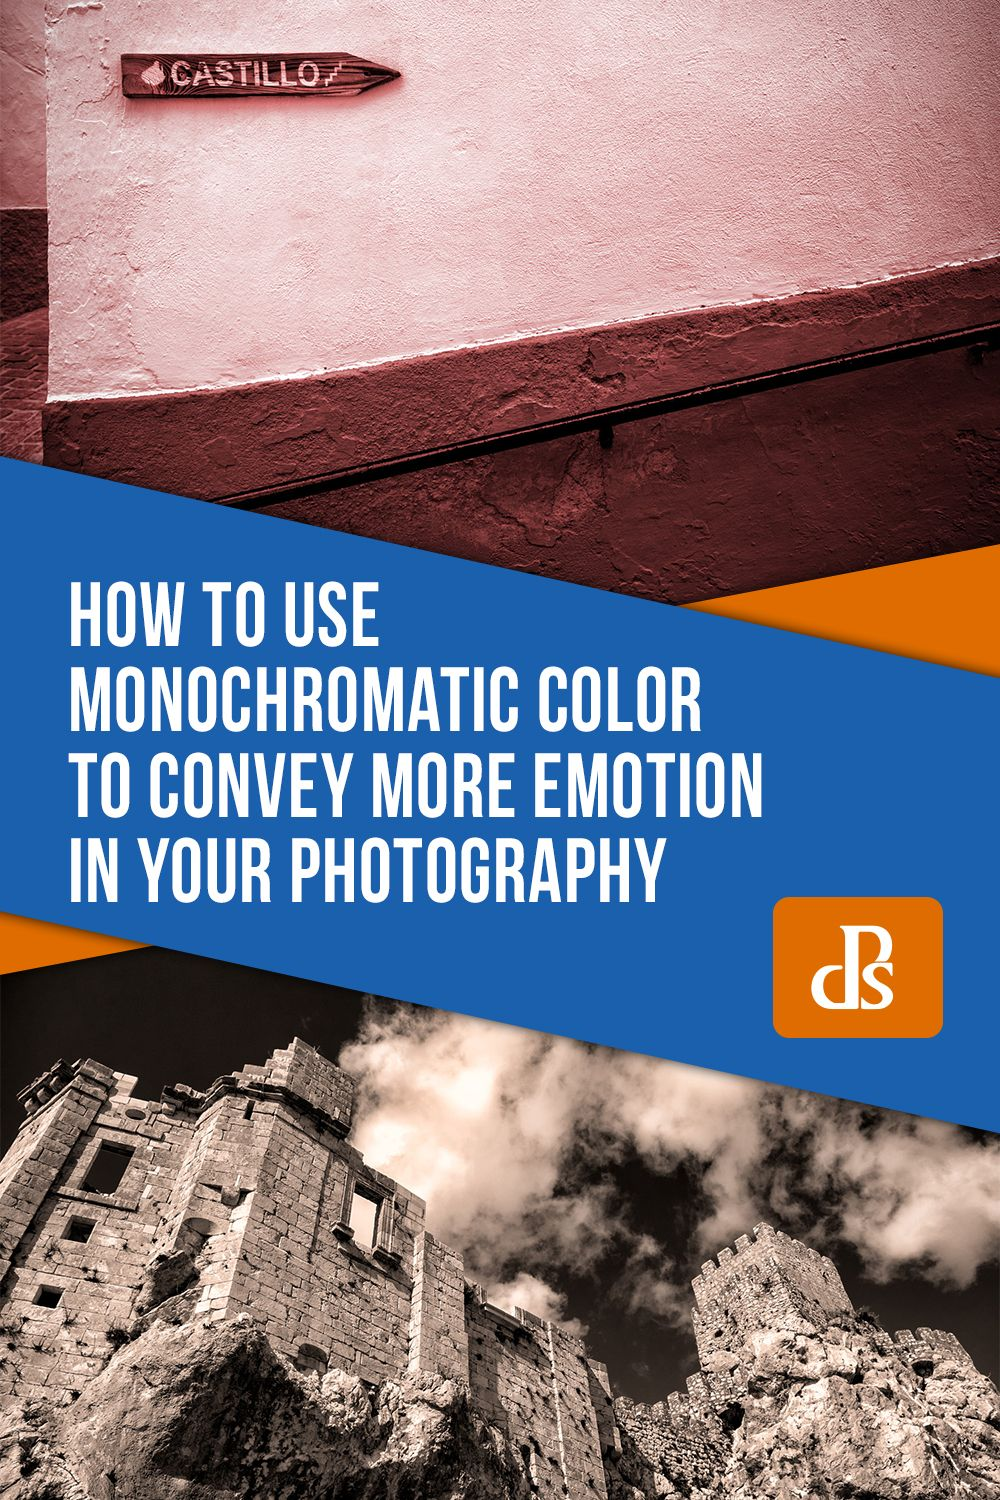 monochromatic color in photography